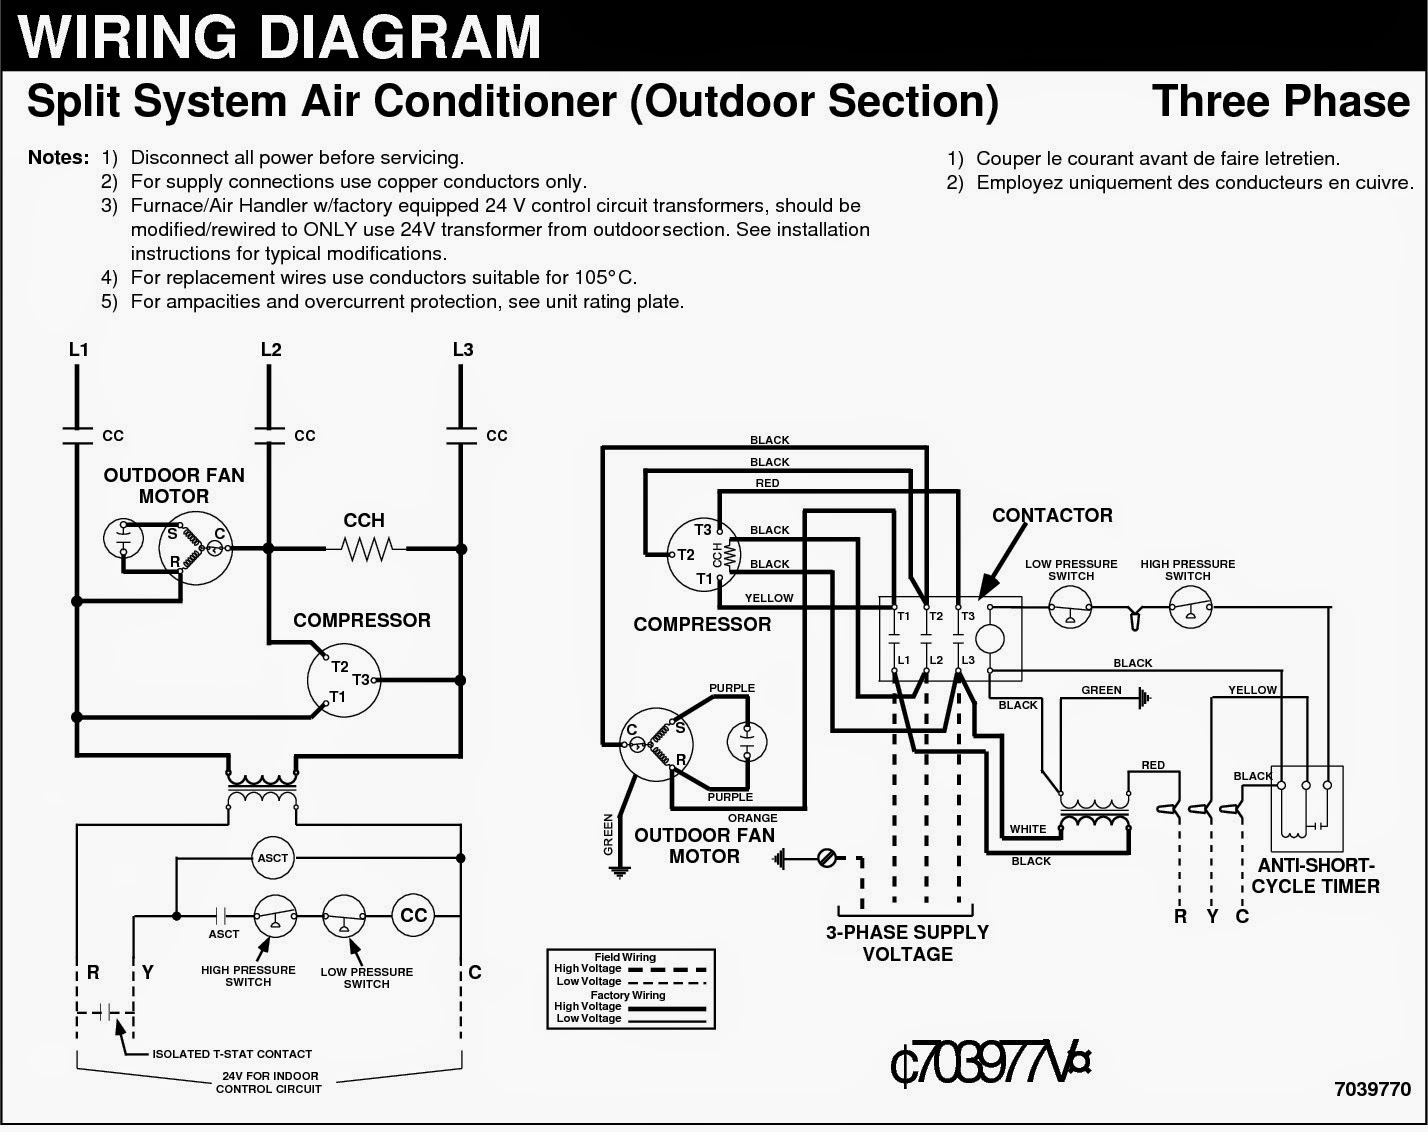 3+phase electrical wiring diagrams for air conditioning systems part two 1 phase wiring diagram at crackthecode.co